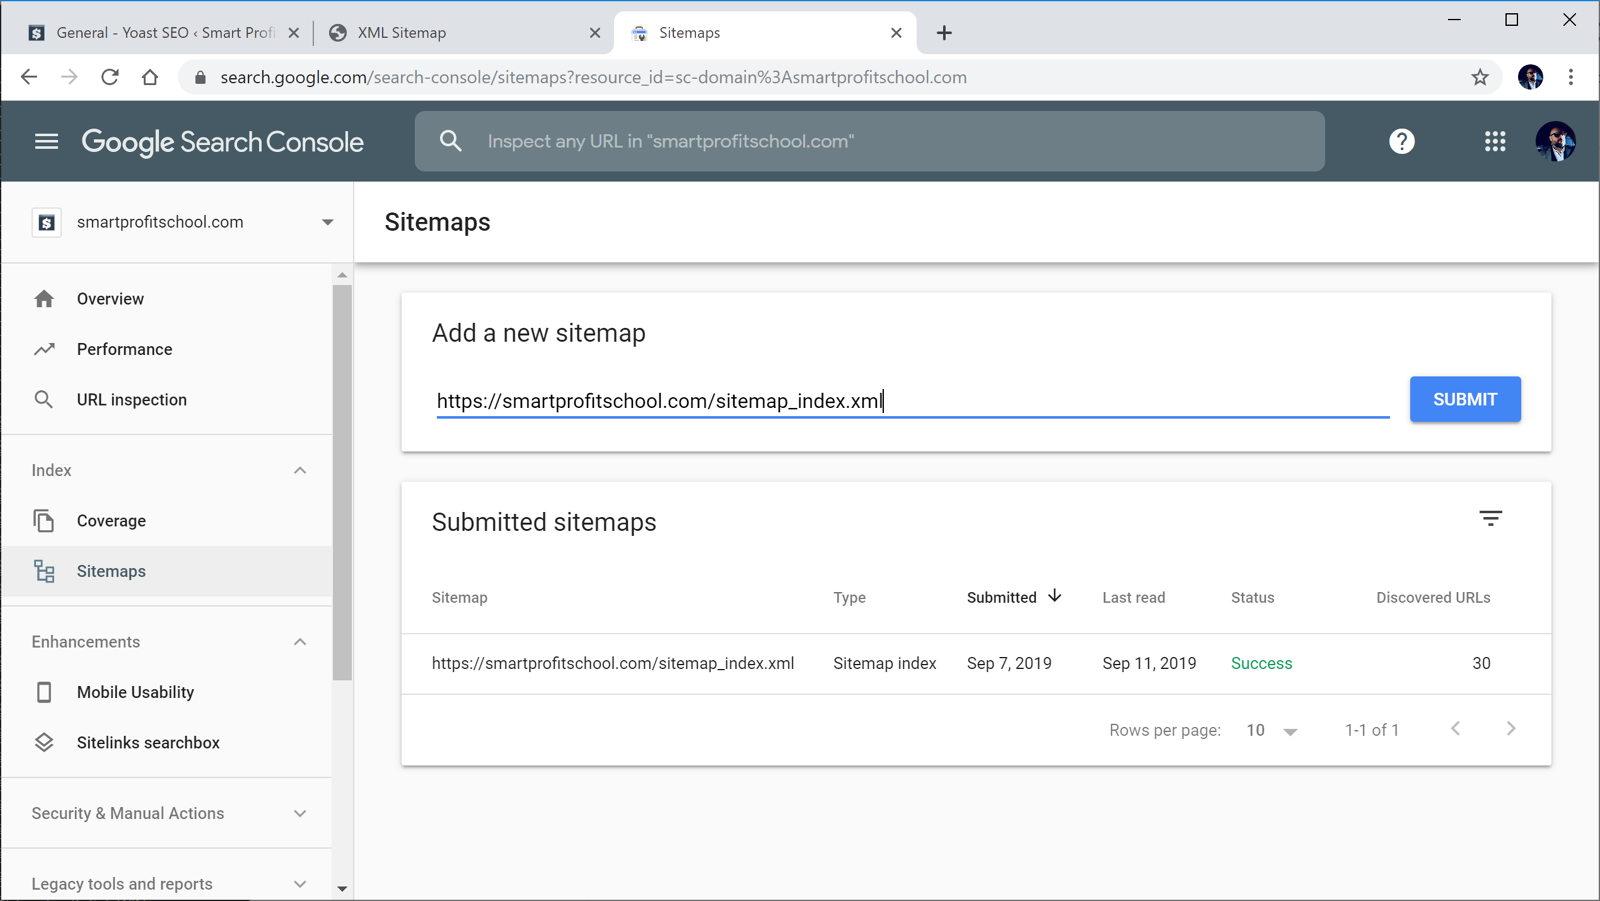 Submitting sitemaps to Google Search Console